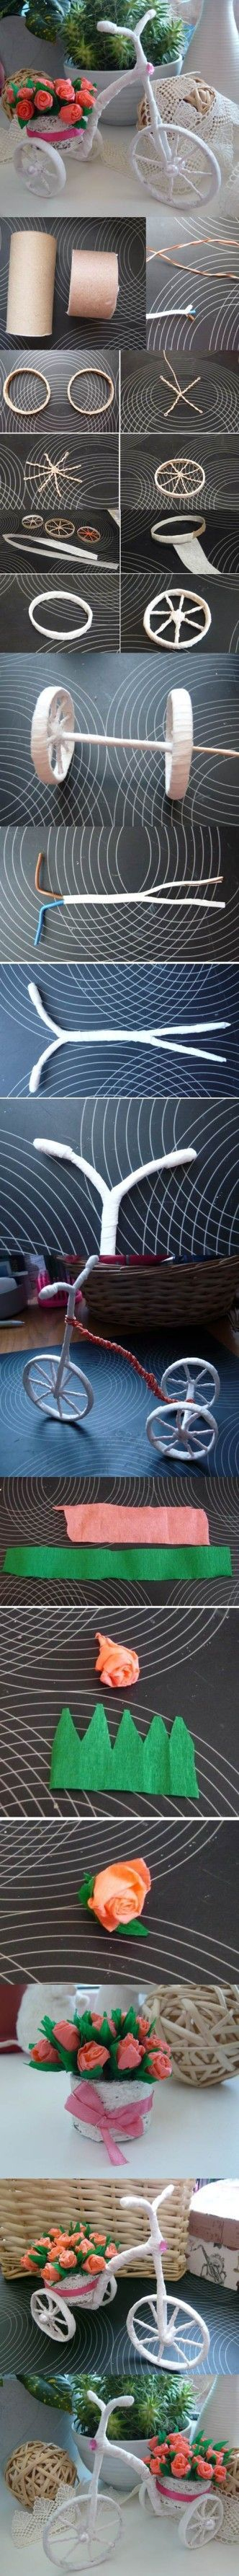 DIY Little Bike Carrying Beautiful Flowers Decoration 2